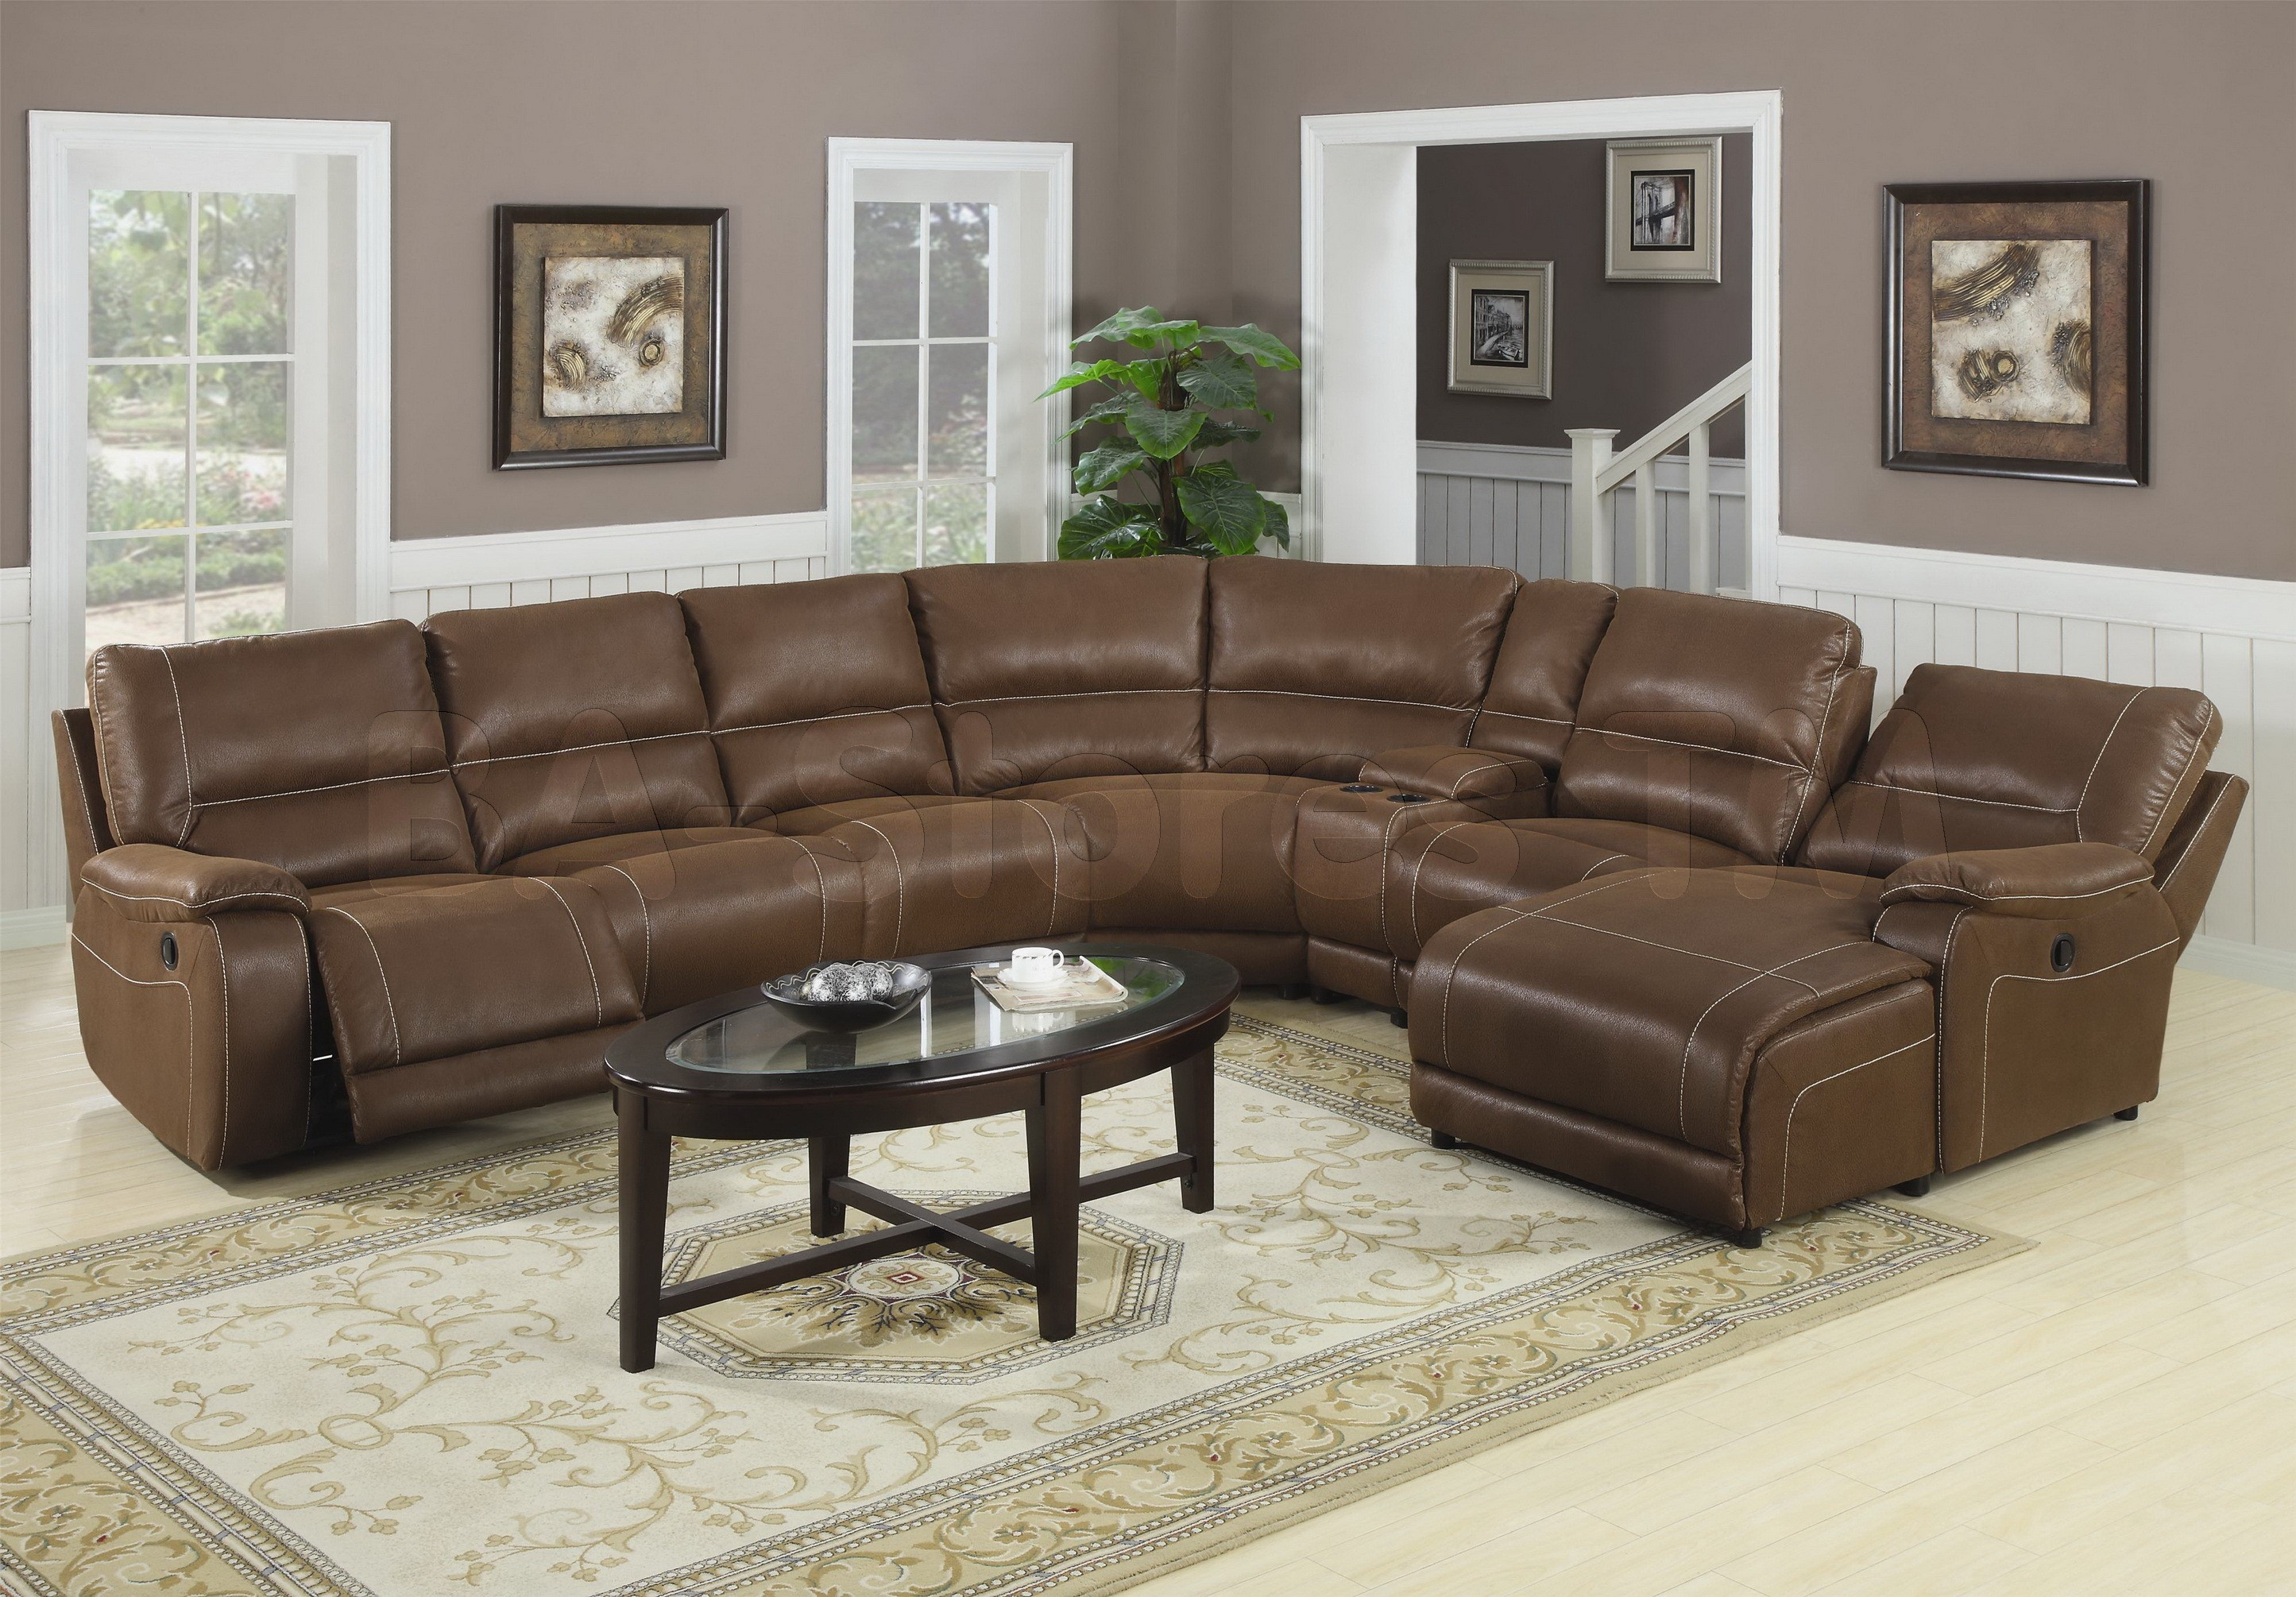 New Cheap R reclining sectional sofas buy sectional sofa